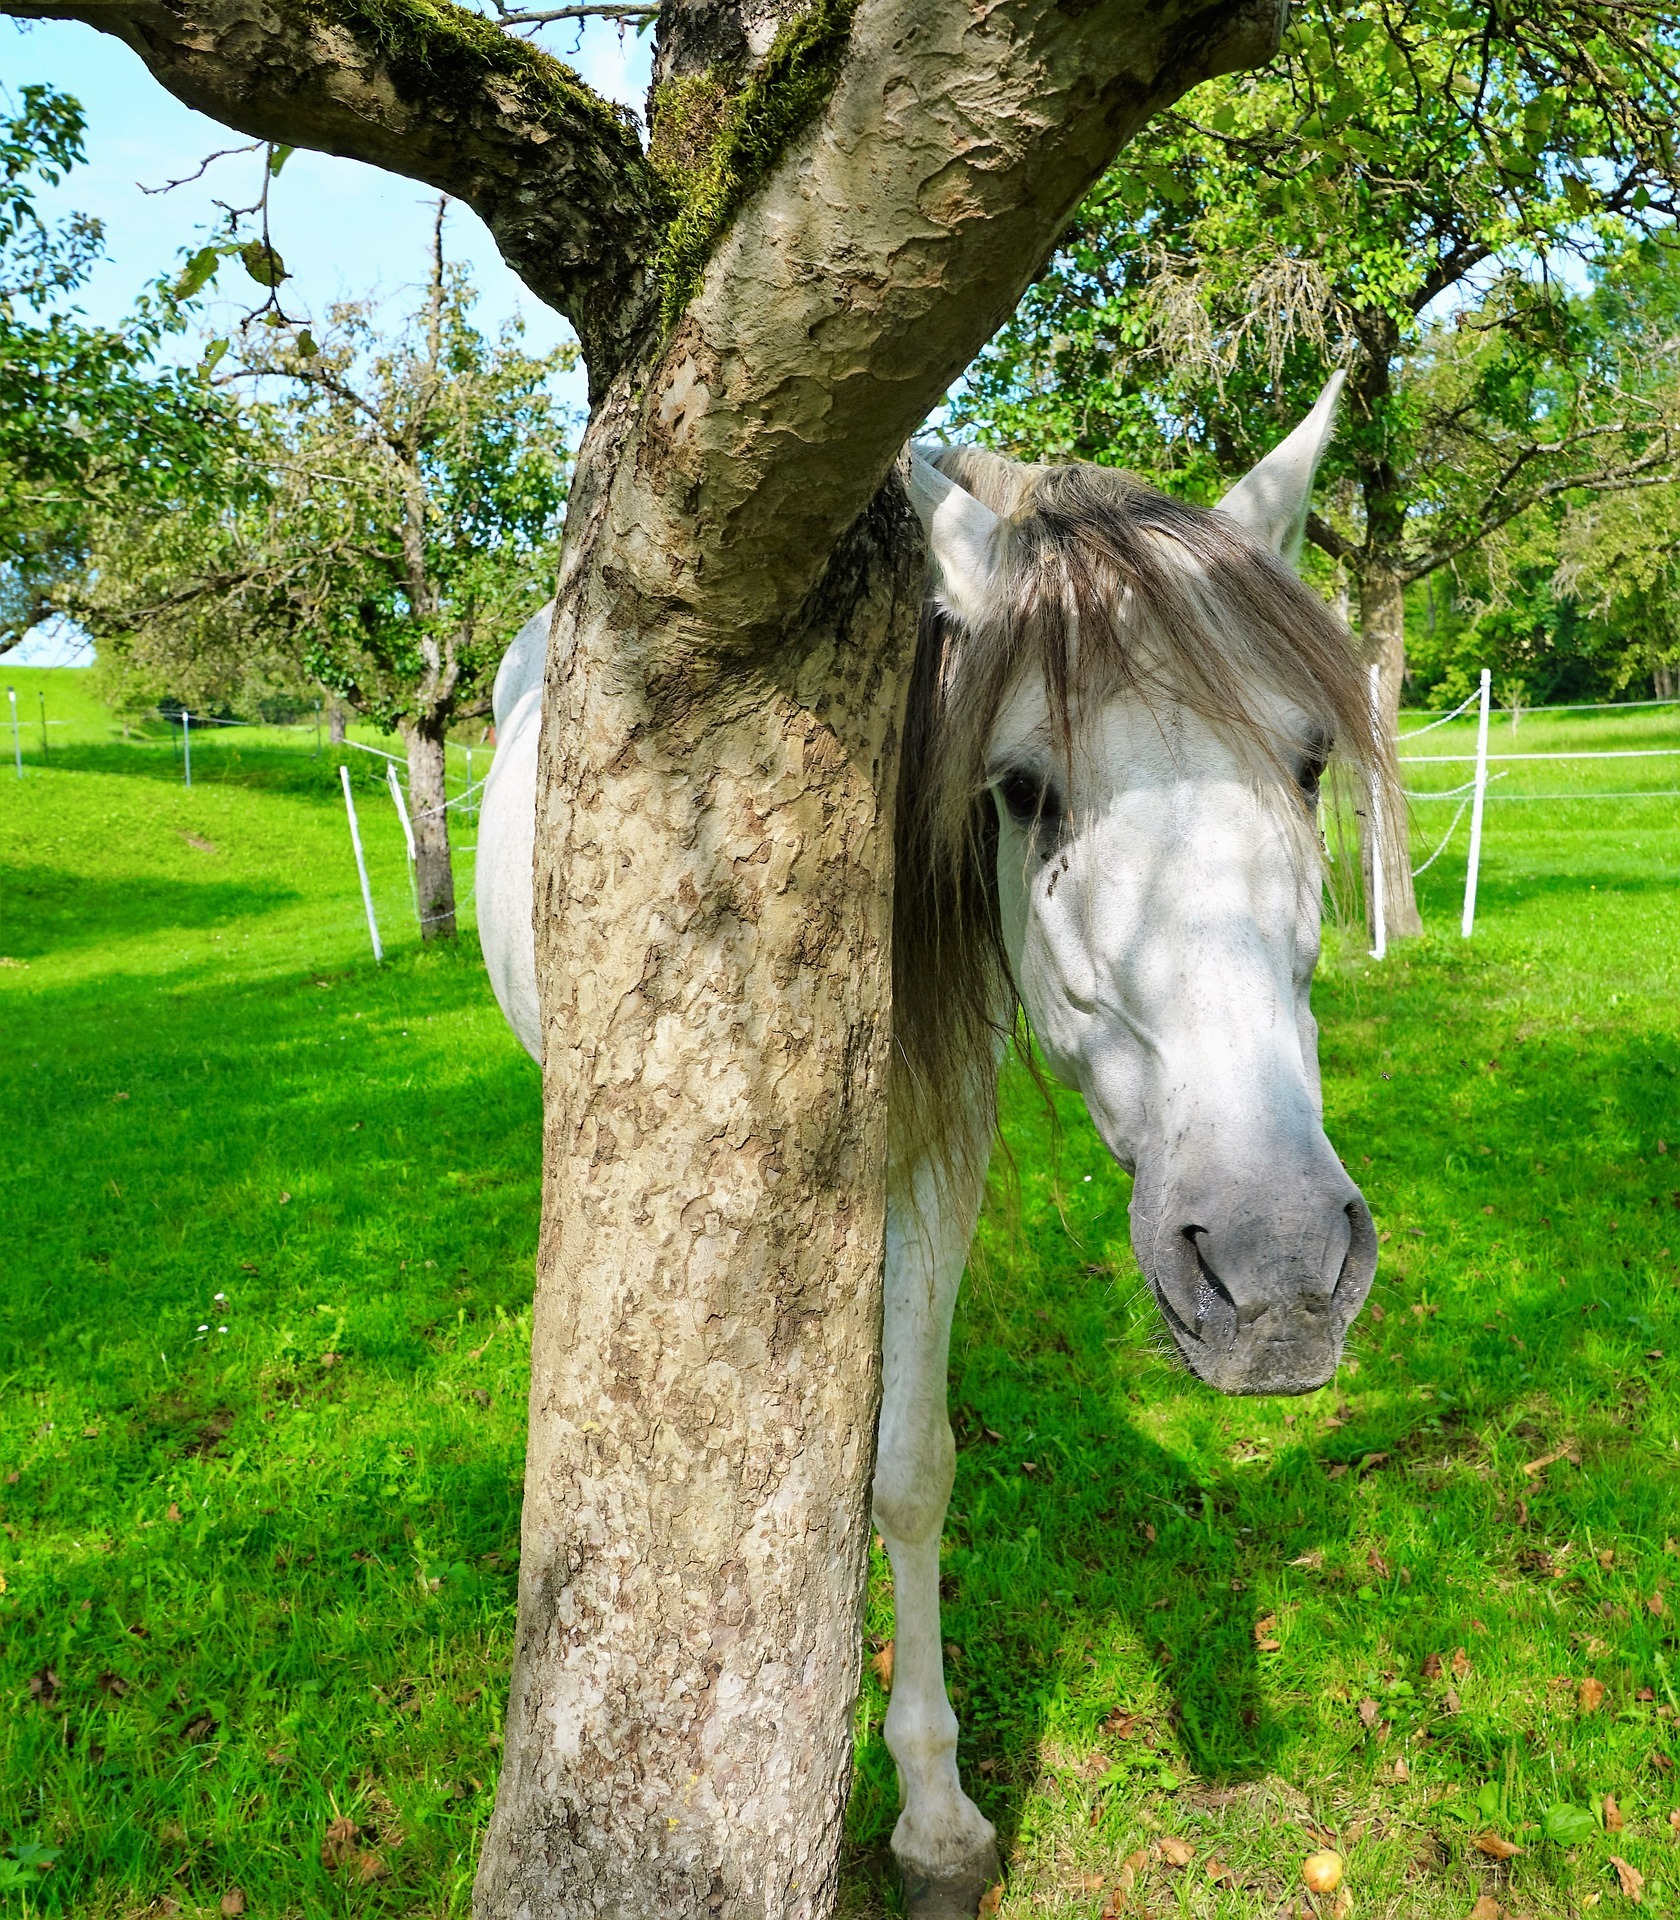 Grey horse in the shade of a tree